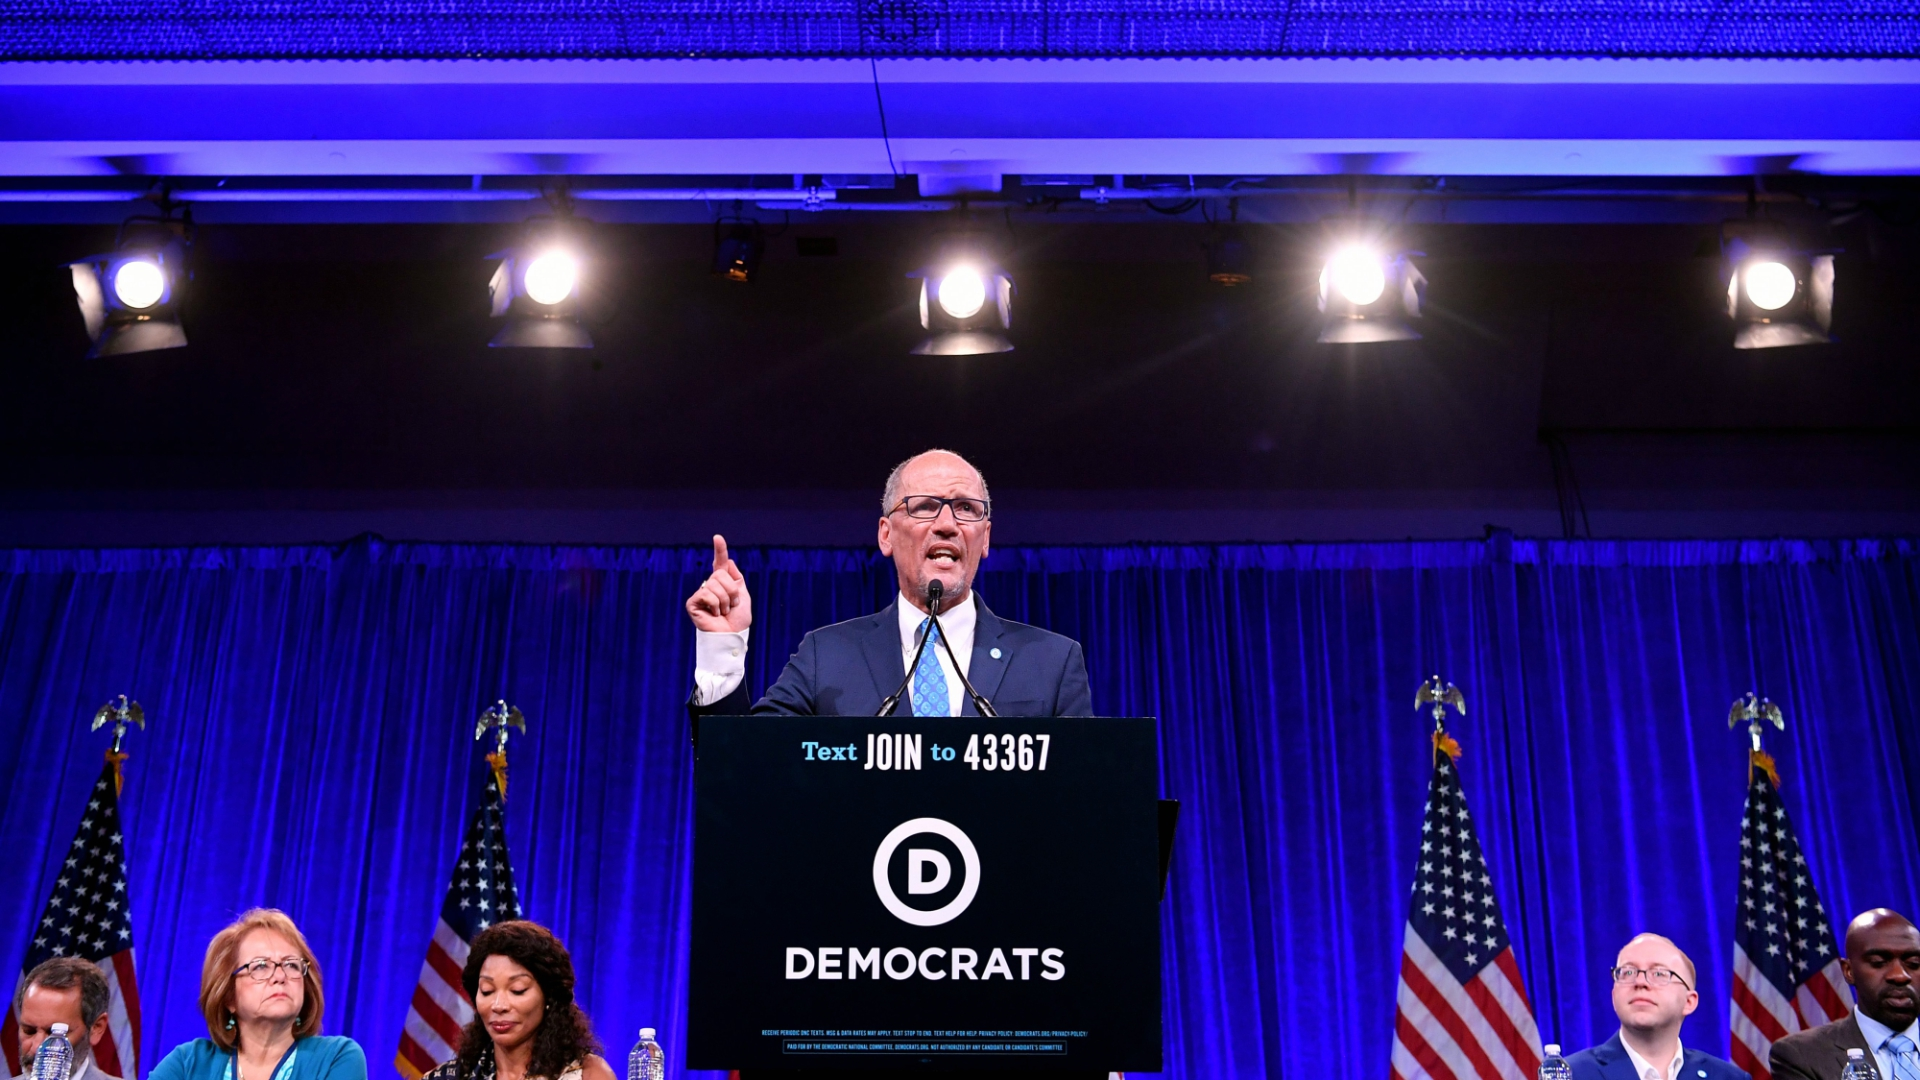 Democratic National Committee Prepares for 2020 Election in San Francisco